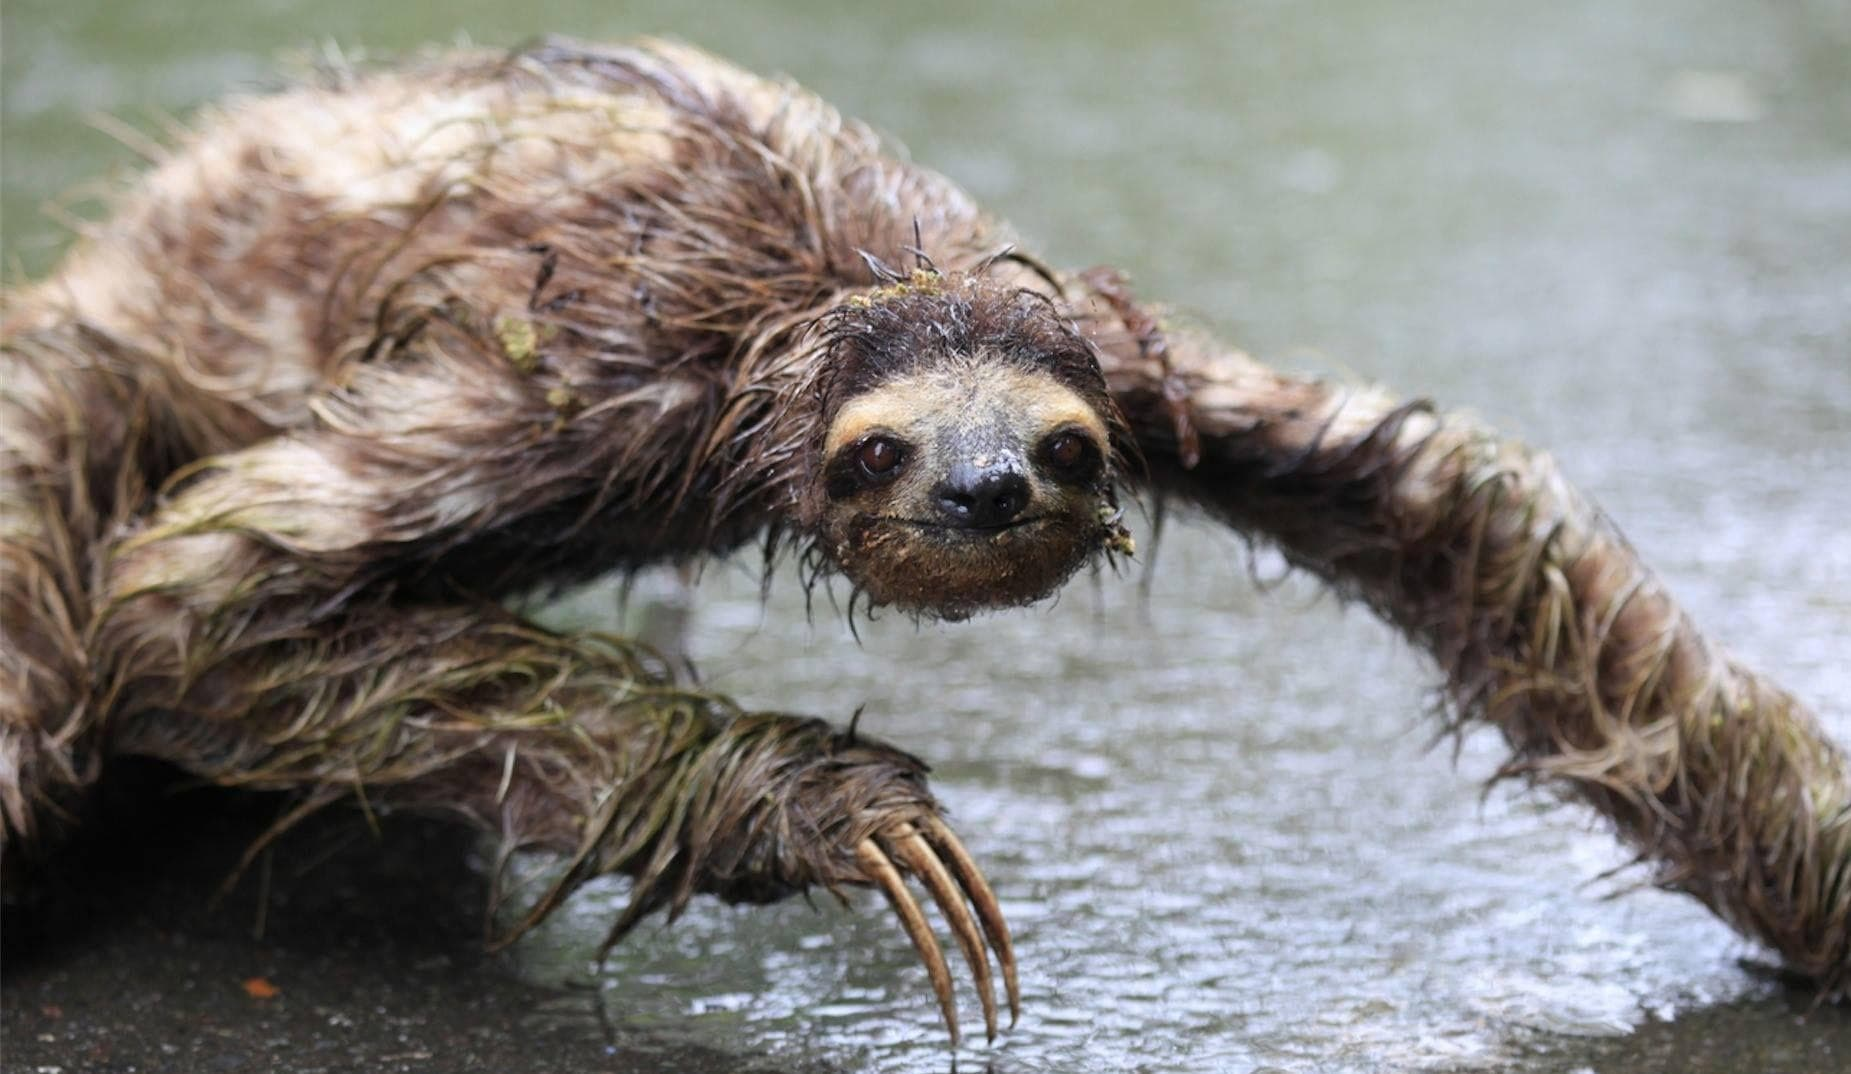 Random Cute Animals That Look Scary When They're Soaking Wet